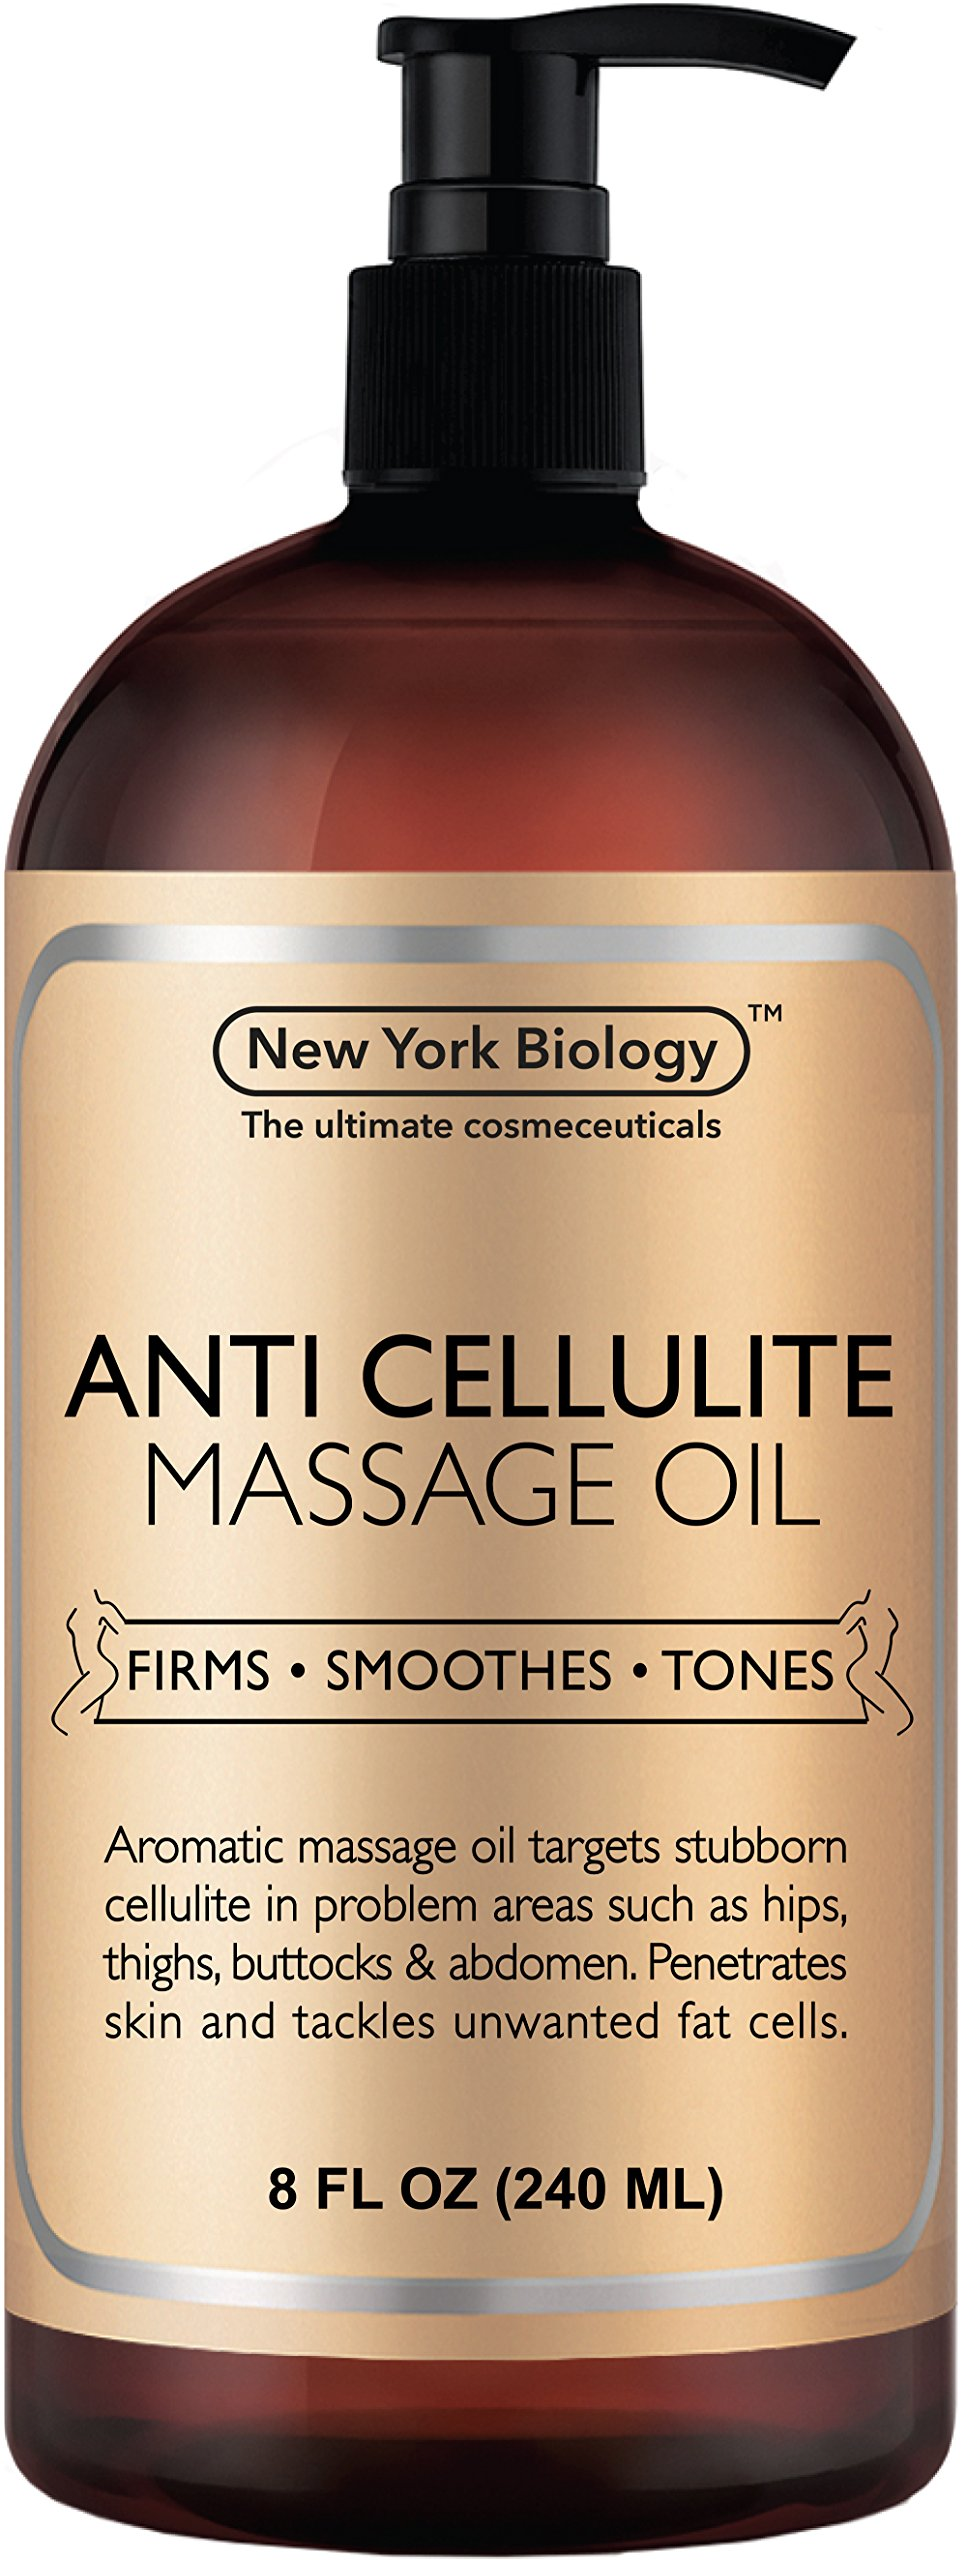 New York Biology Anti Cellulite Treatment Massage Oil - All Natural Ingredients - Infused with Essential Oils - Penetrates Skin and Targets Unwanted Fat Tissues - 8 oz by New York Biology